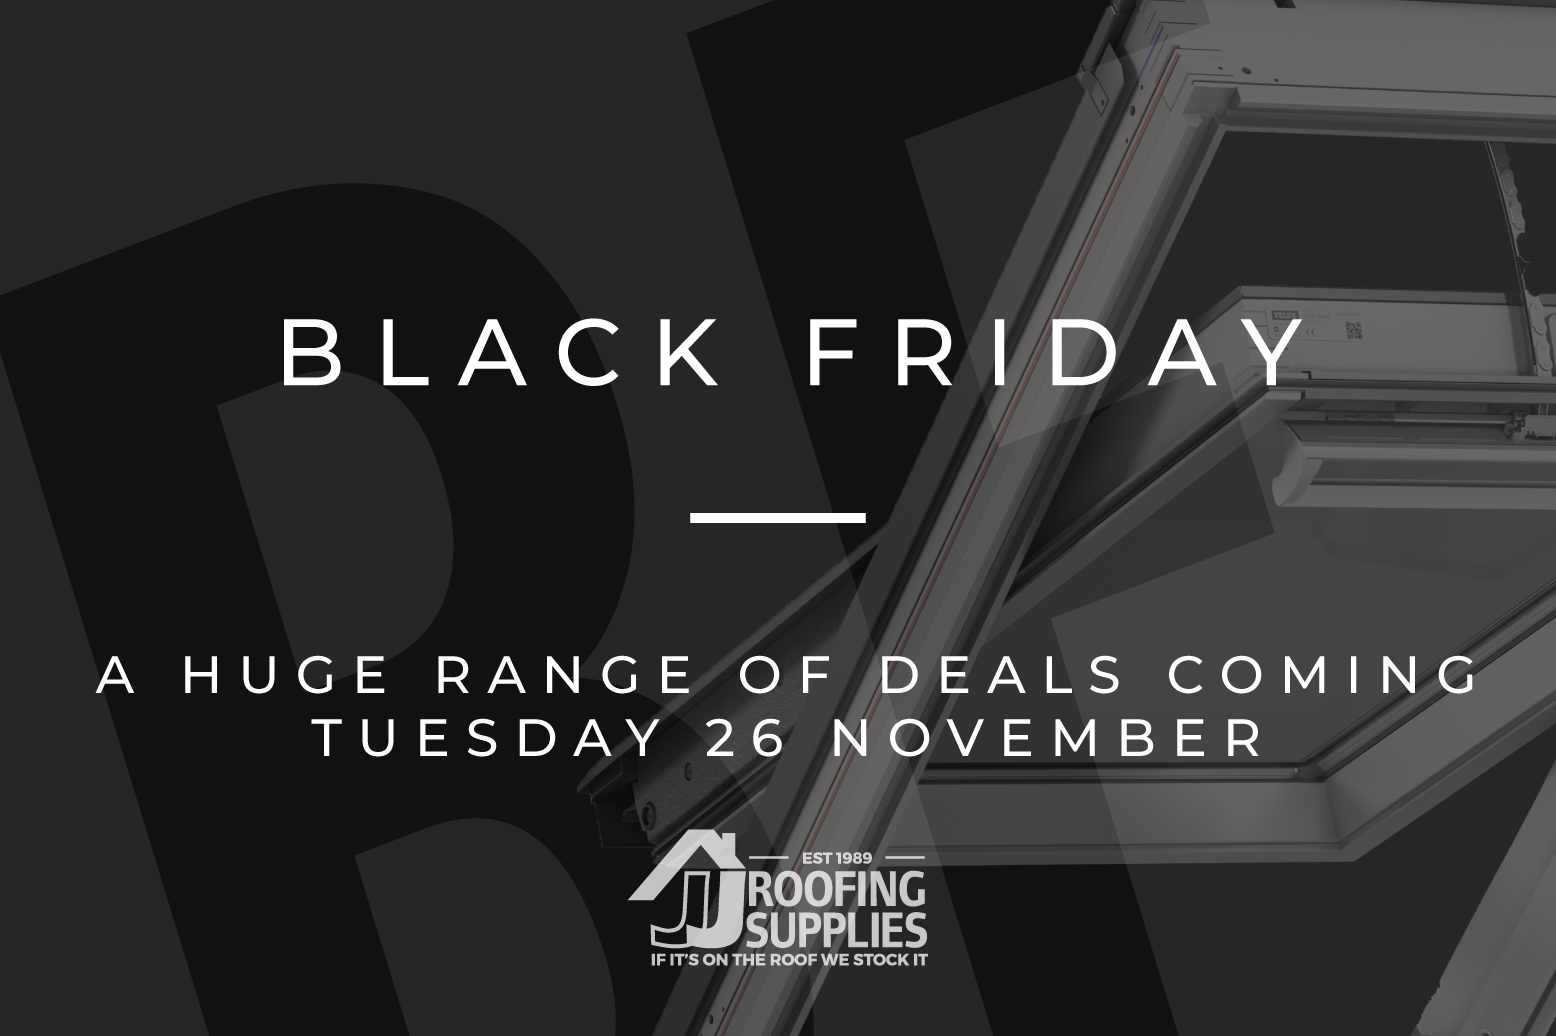 Love a deal? Want to see offers before anyone else? Black Friday Deals Coming Tuesday 26 November